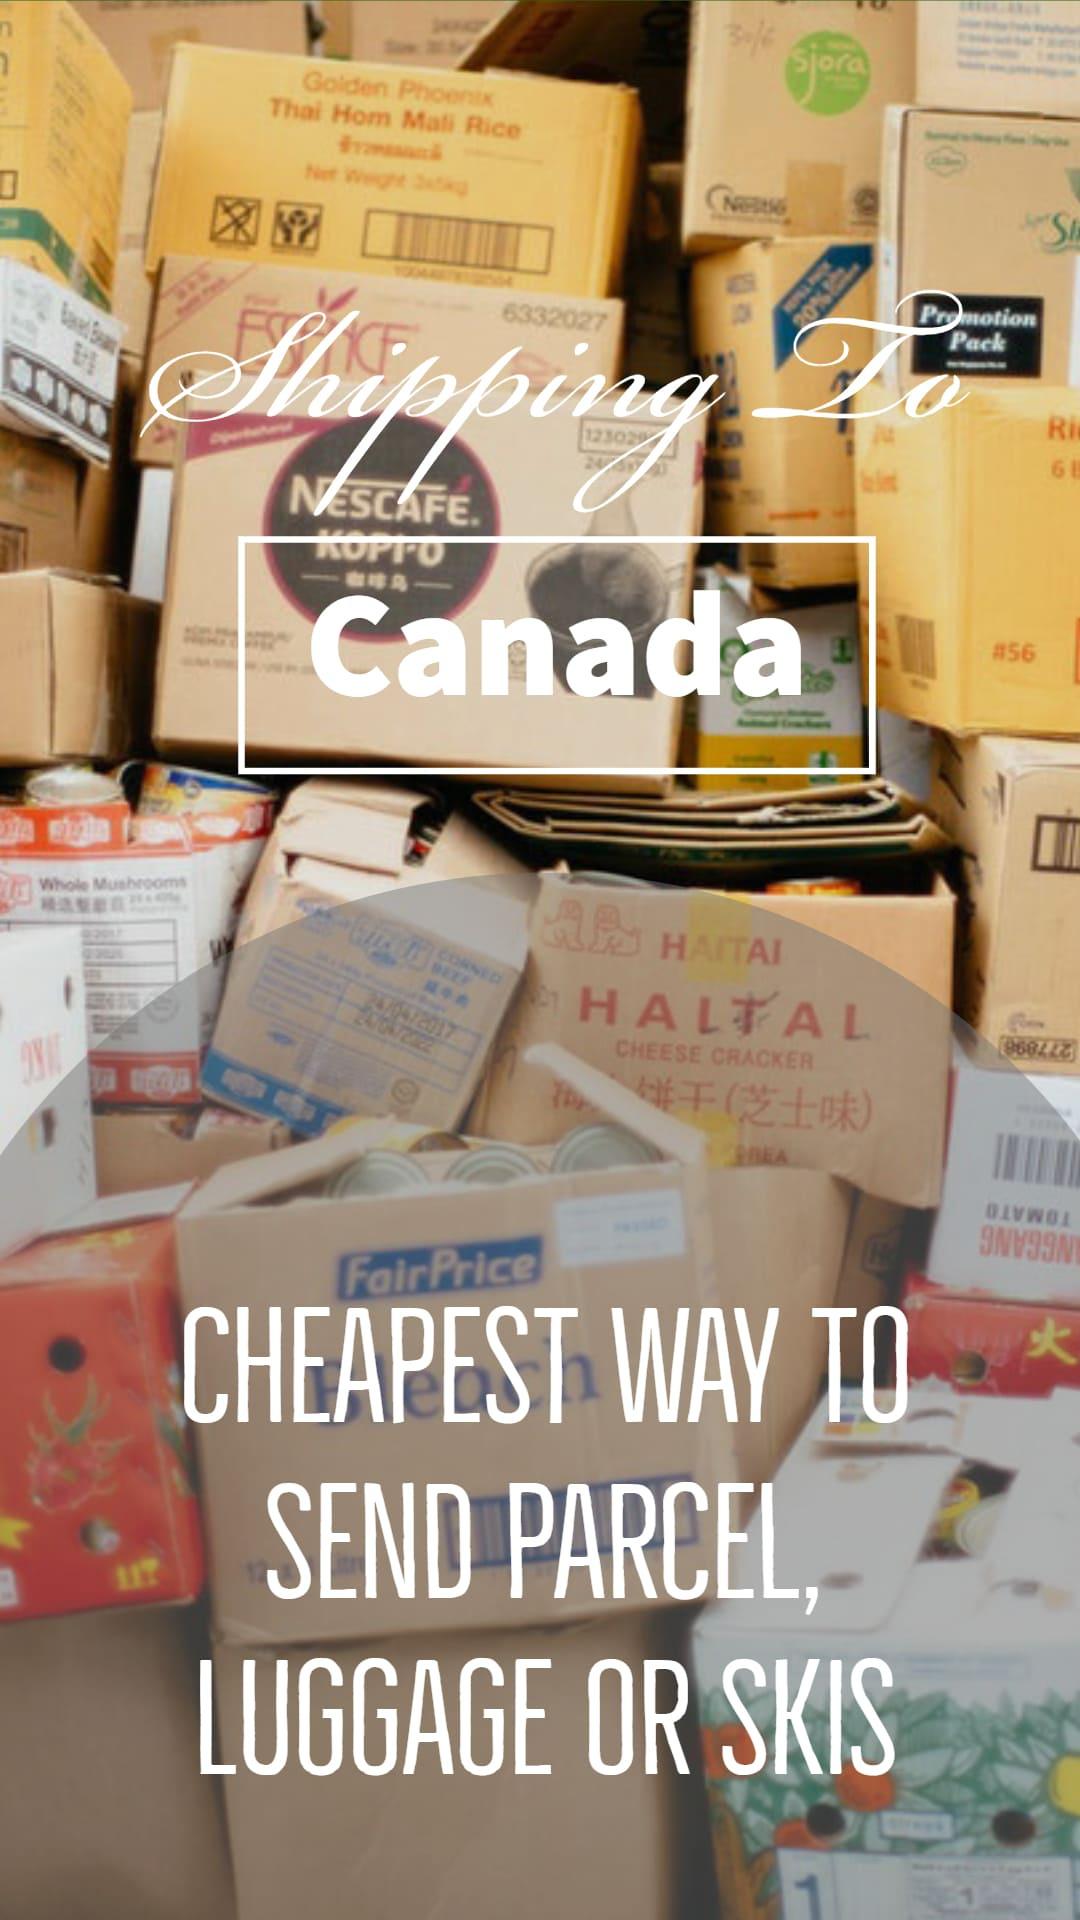 Shipping To Canada - Cheapest Way To Send Parcel To Canada